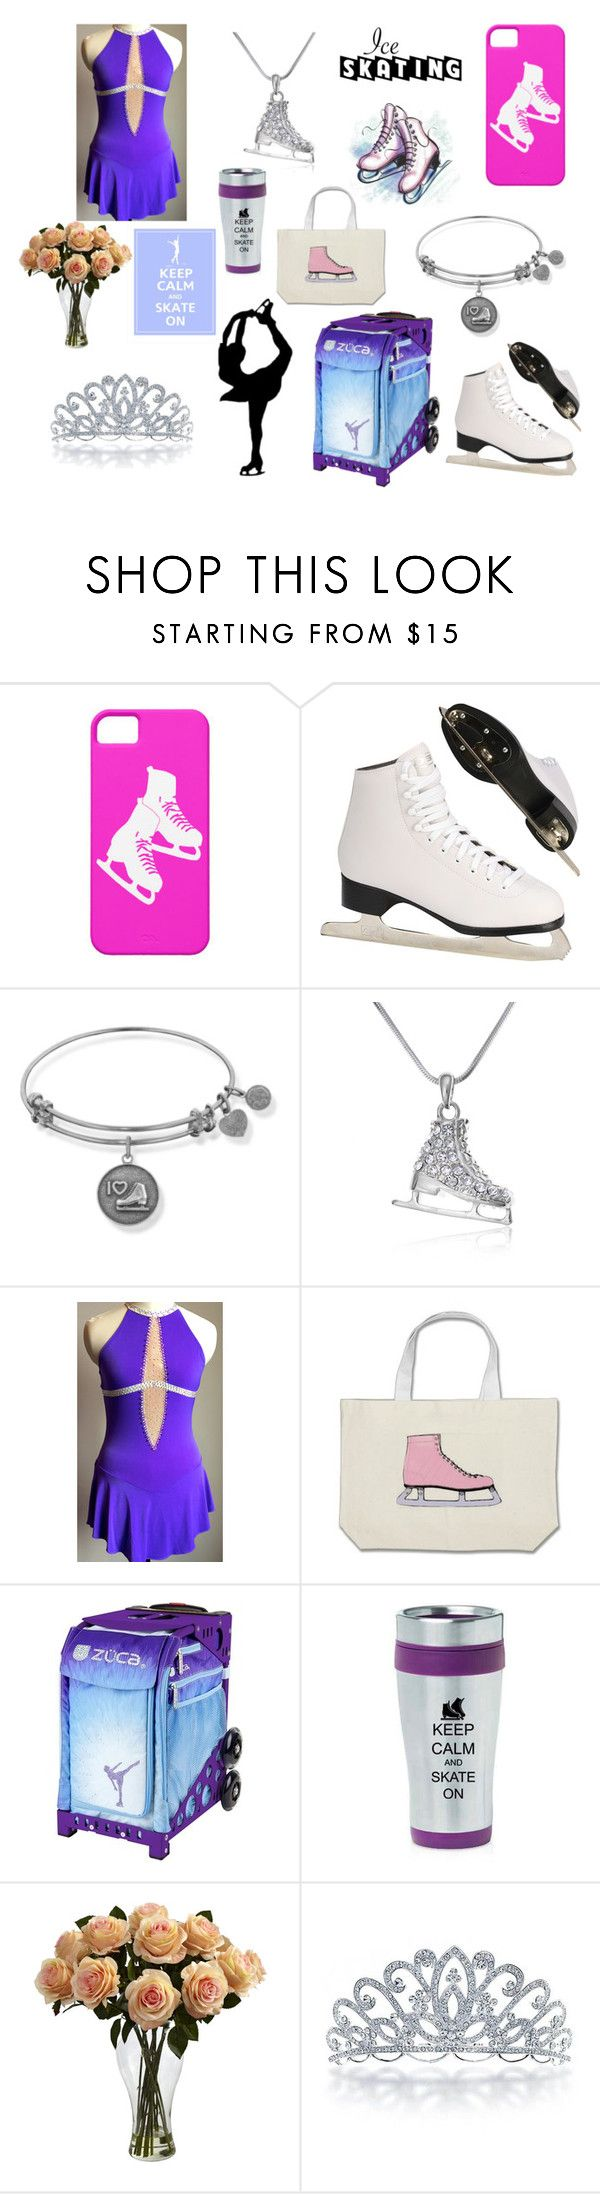 """""""Ice Skating Show Outfit (dedicated to me)"""" by nmekonnen28 on Polyvore featuring Nearly Natural, Bling Jewelry, women's clothing, women's fashion, women, female, woman, misses and juniors"""